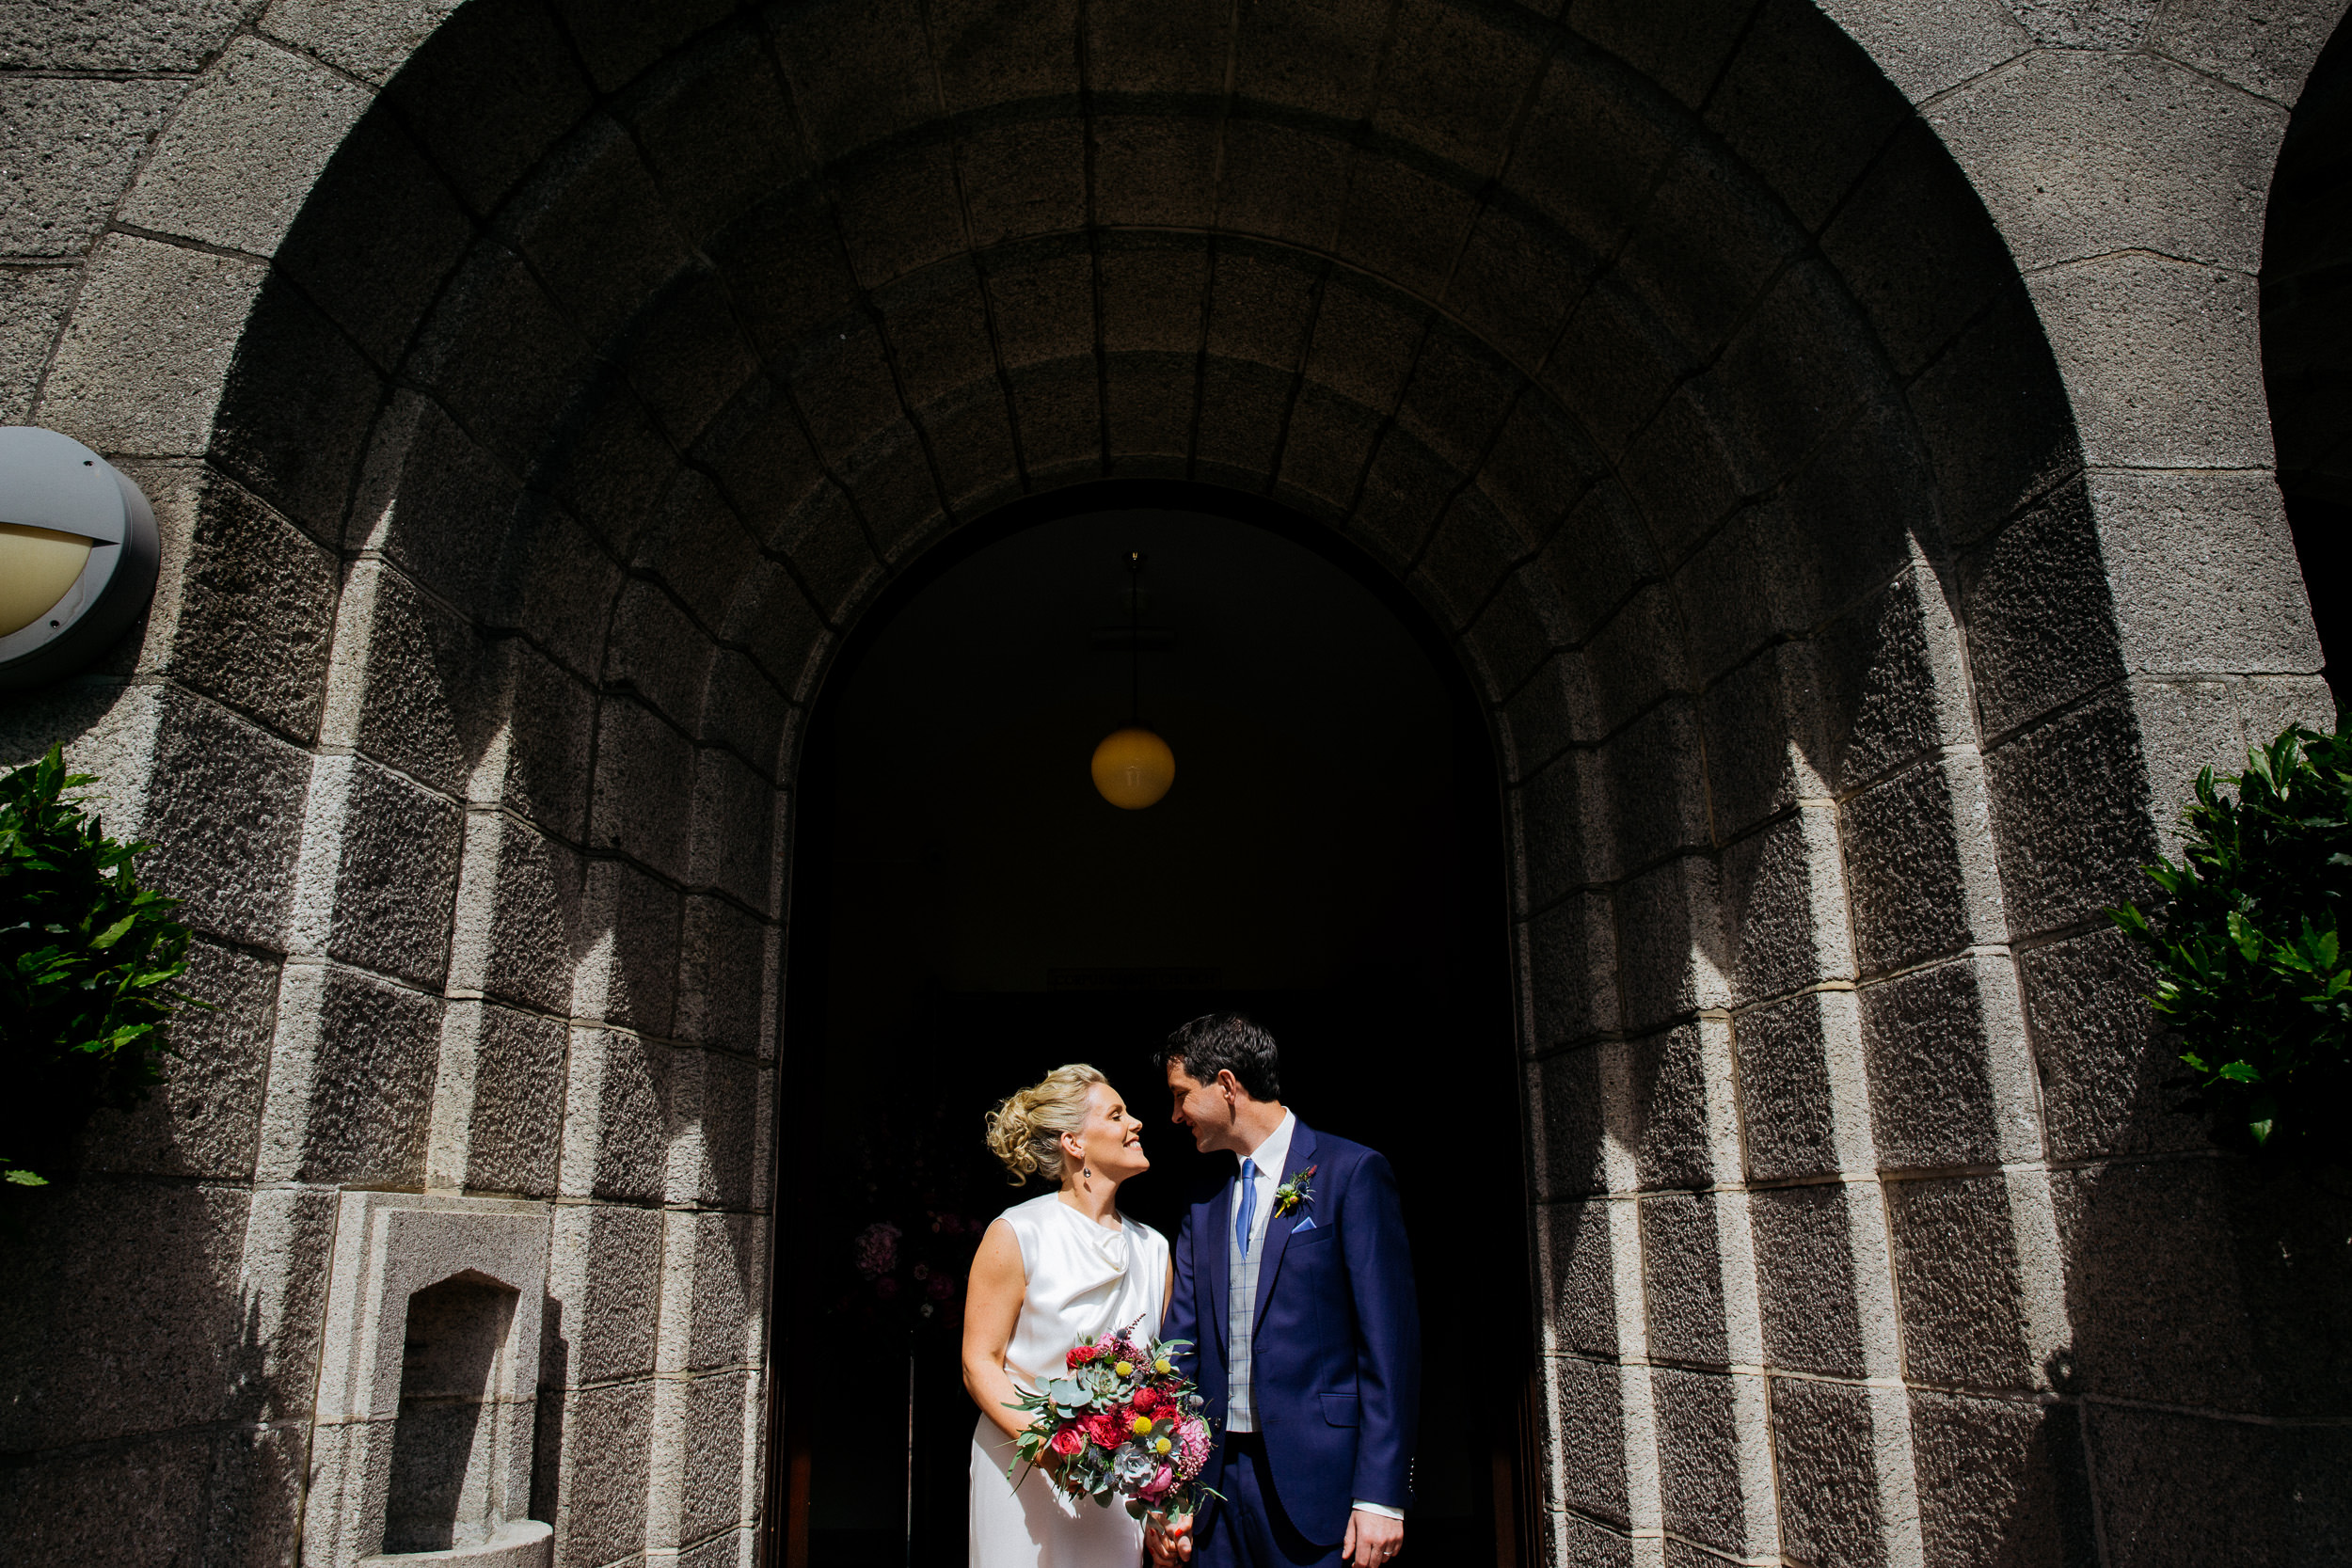 clairebyrnephotography-fun-wedding-photographer-ireland-creative-131.jpg